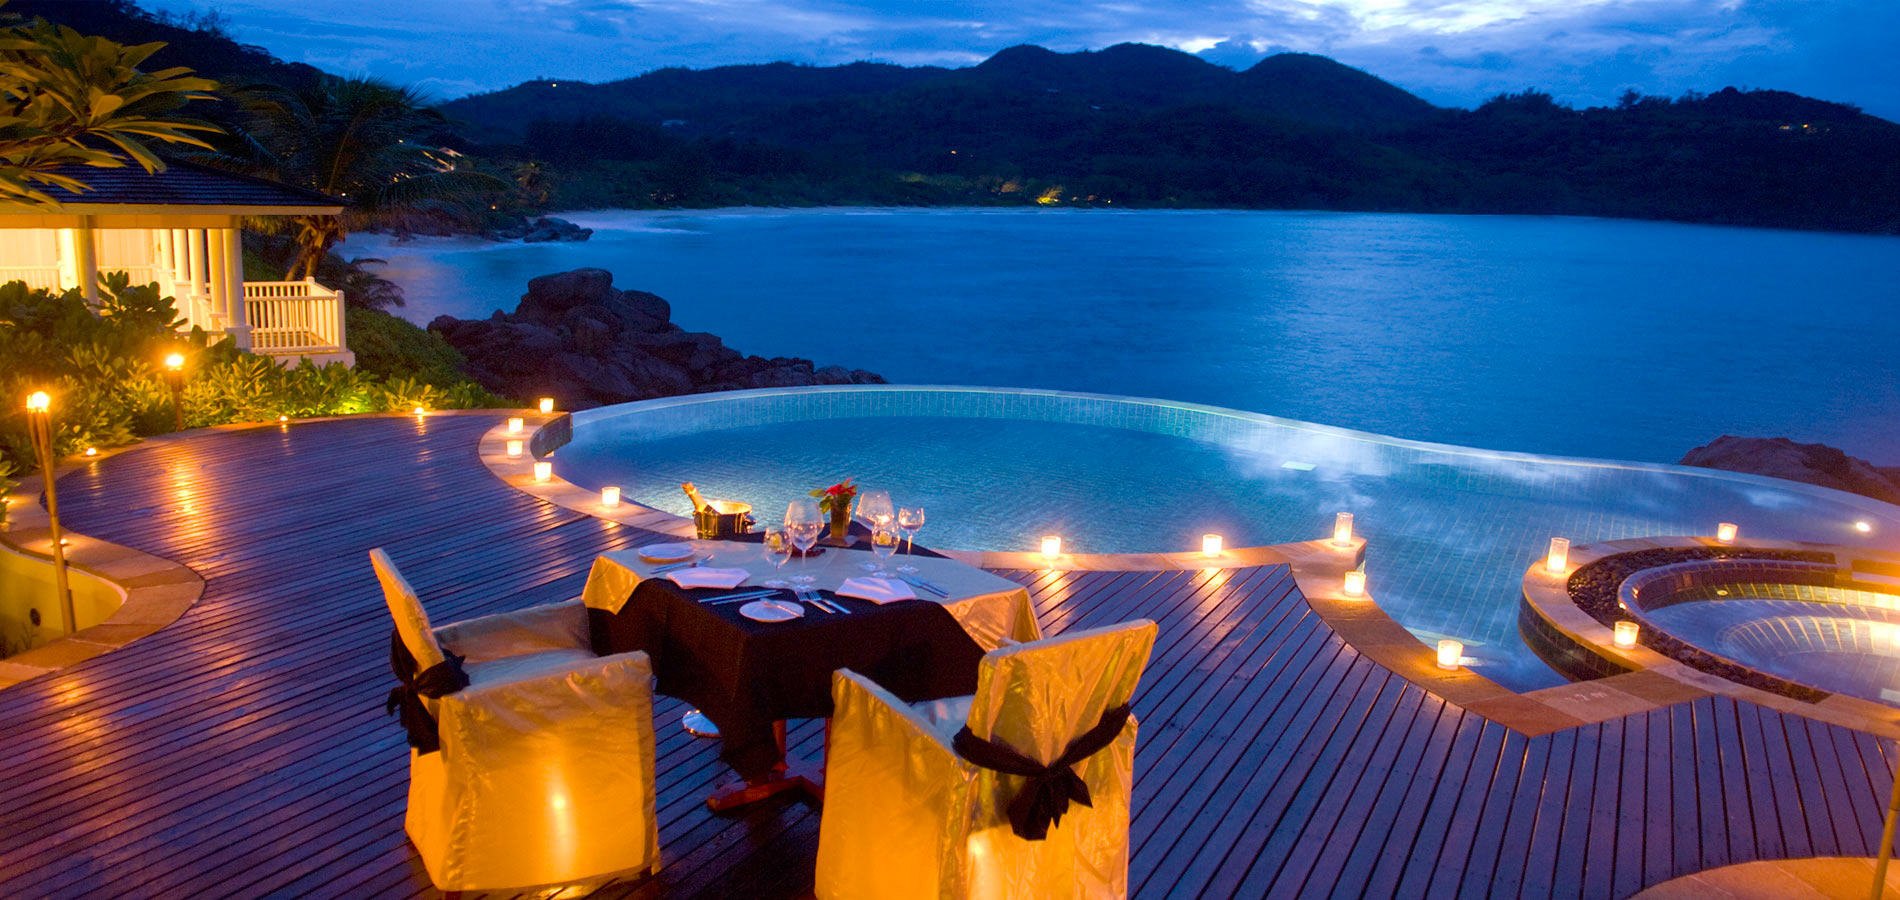 10 Best Luxury Beach Resorts To Heat Up Your Sex Life - Fregate Island Private, Seychelles